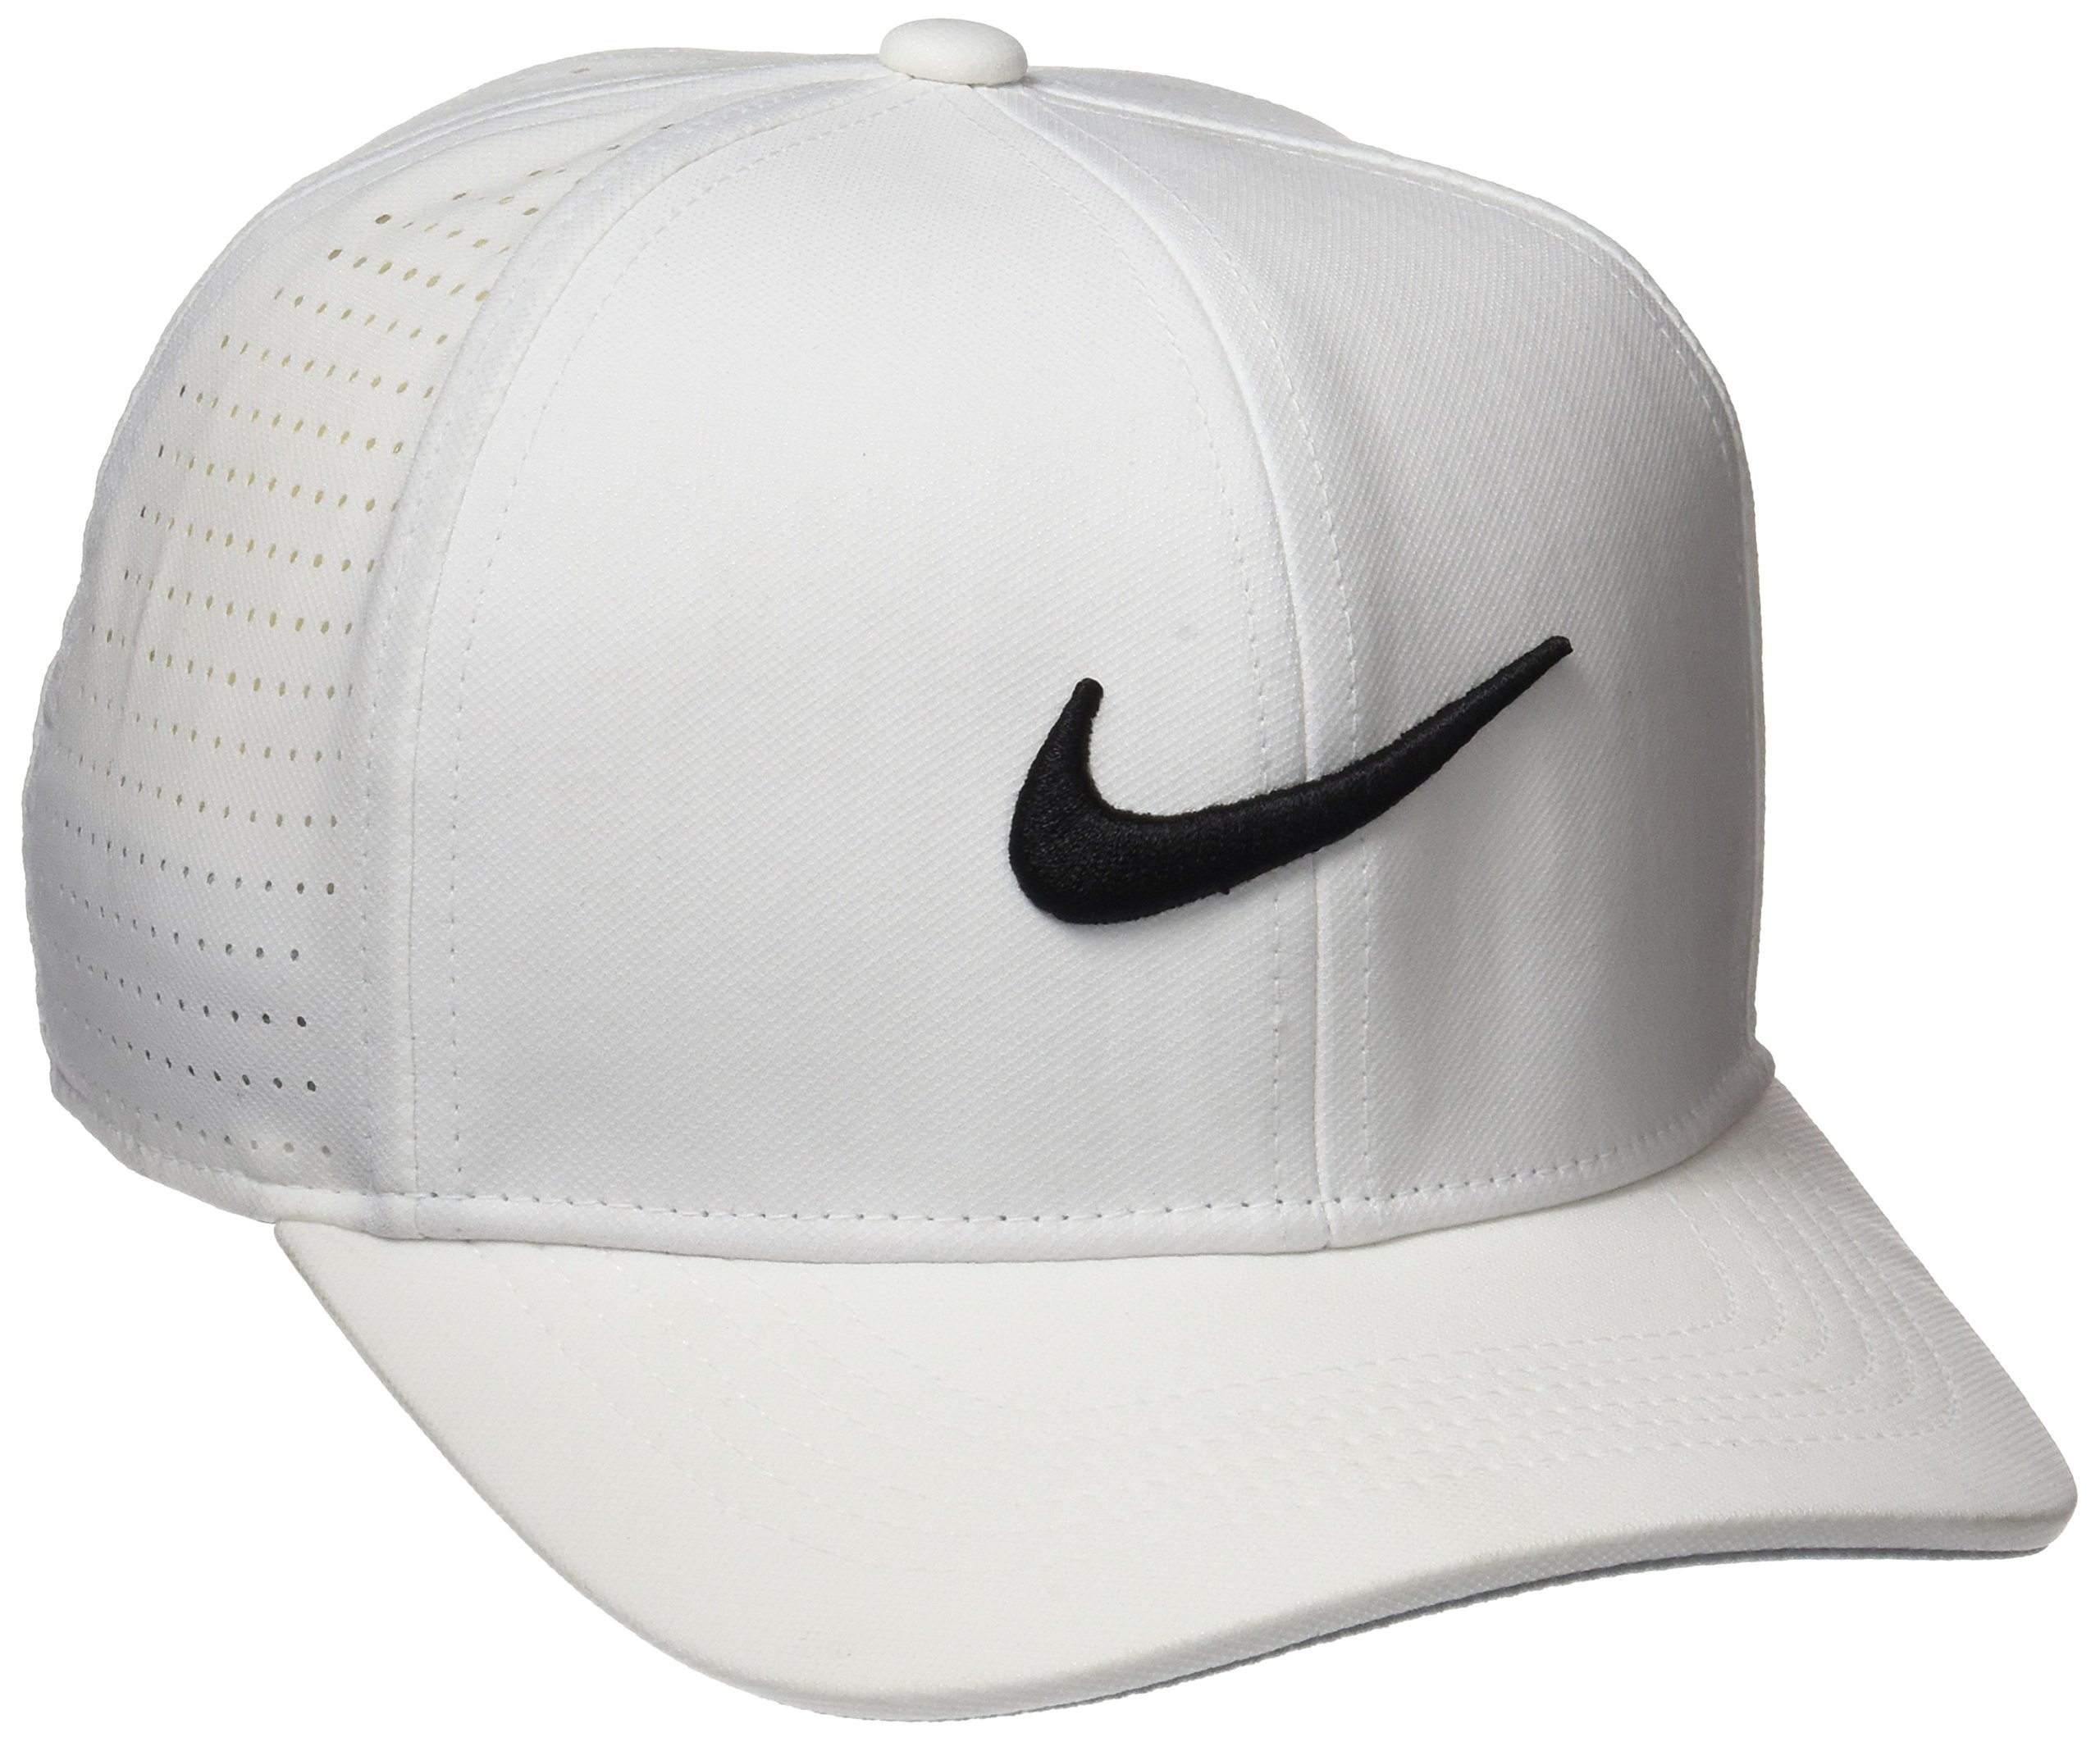 Nike Youth AeroBill Classic99 Athletic Golf Hat Adjustable (White)